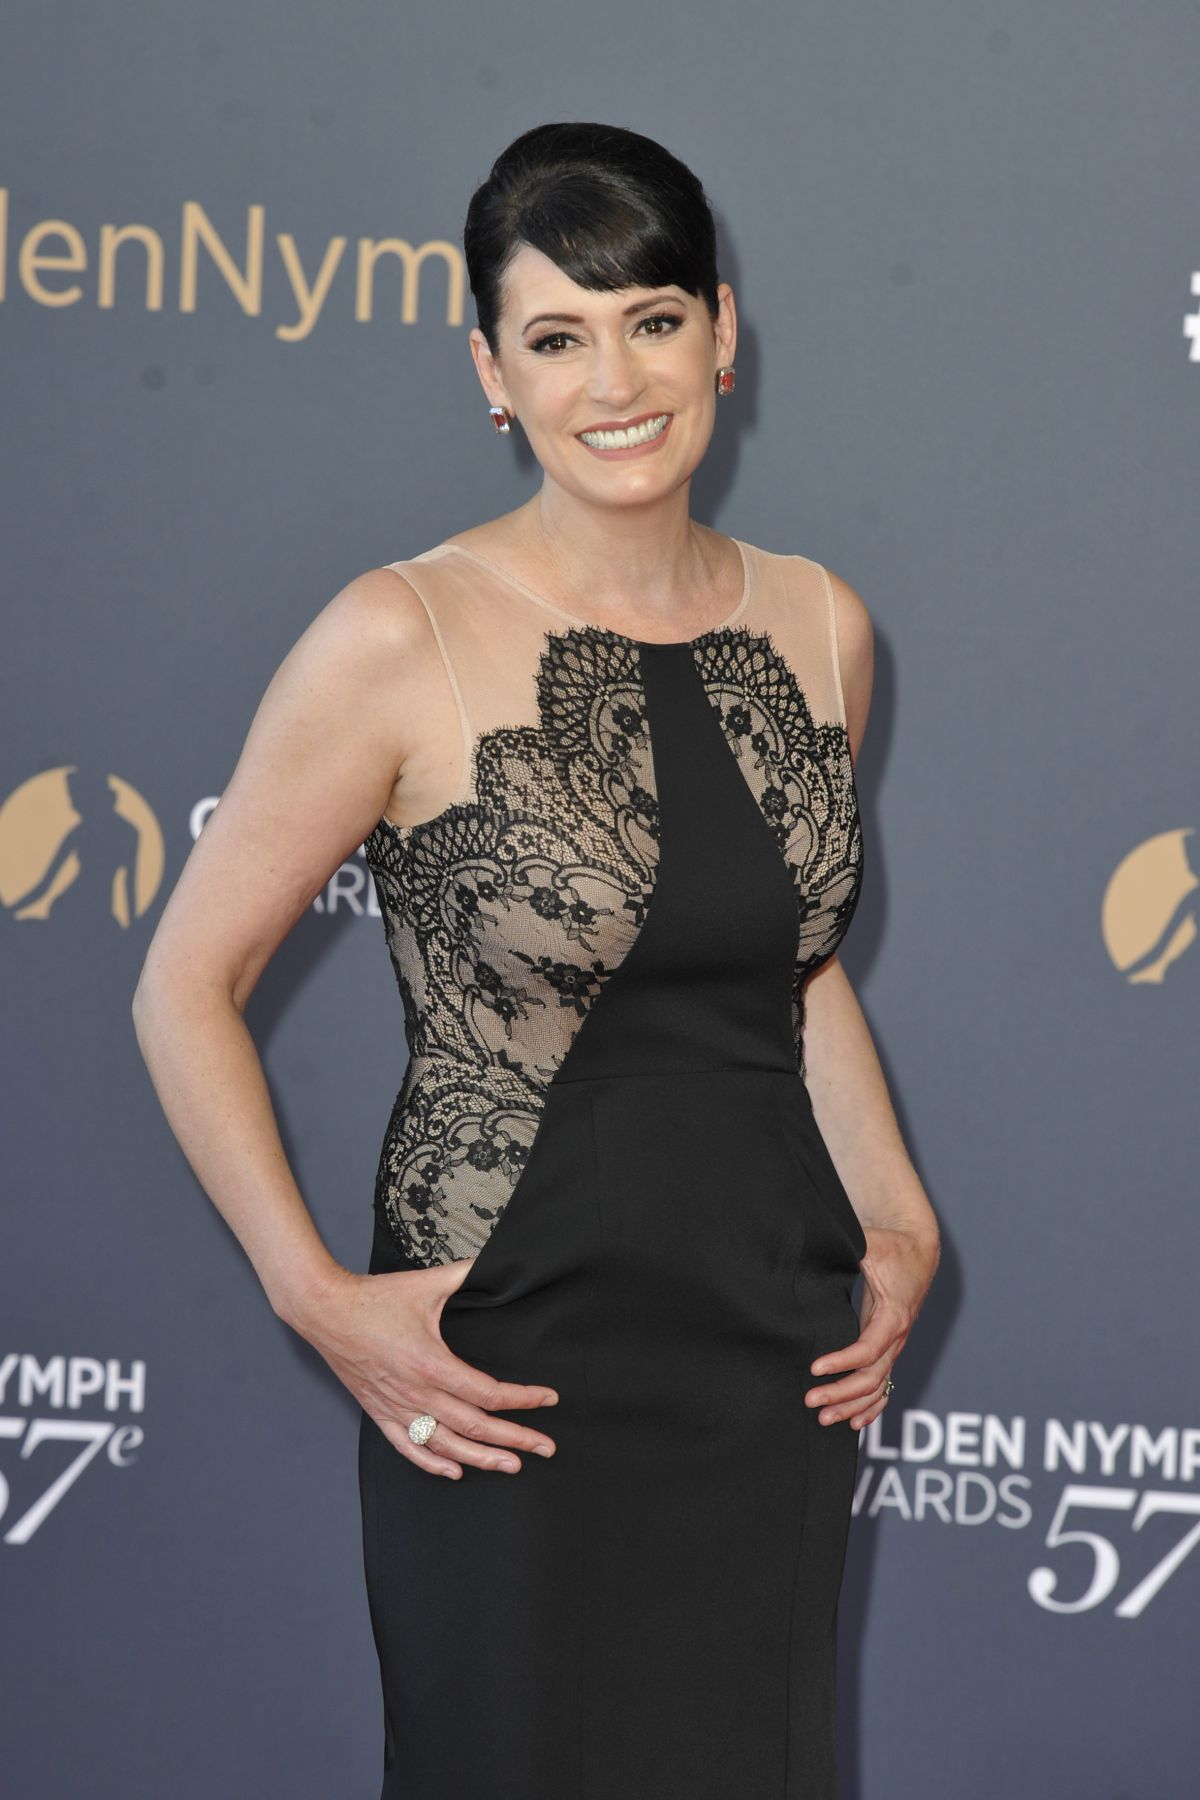 Paget Brewster Hot  Sexy Bikini Images, Photos And Videos-5062